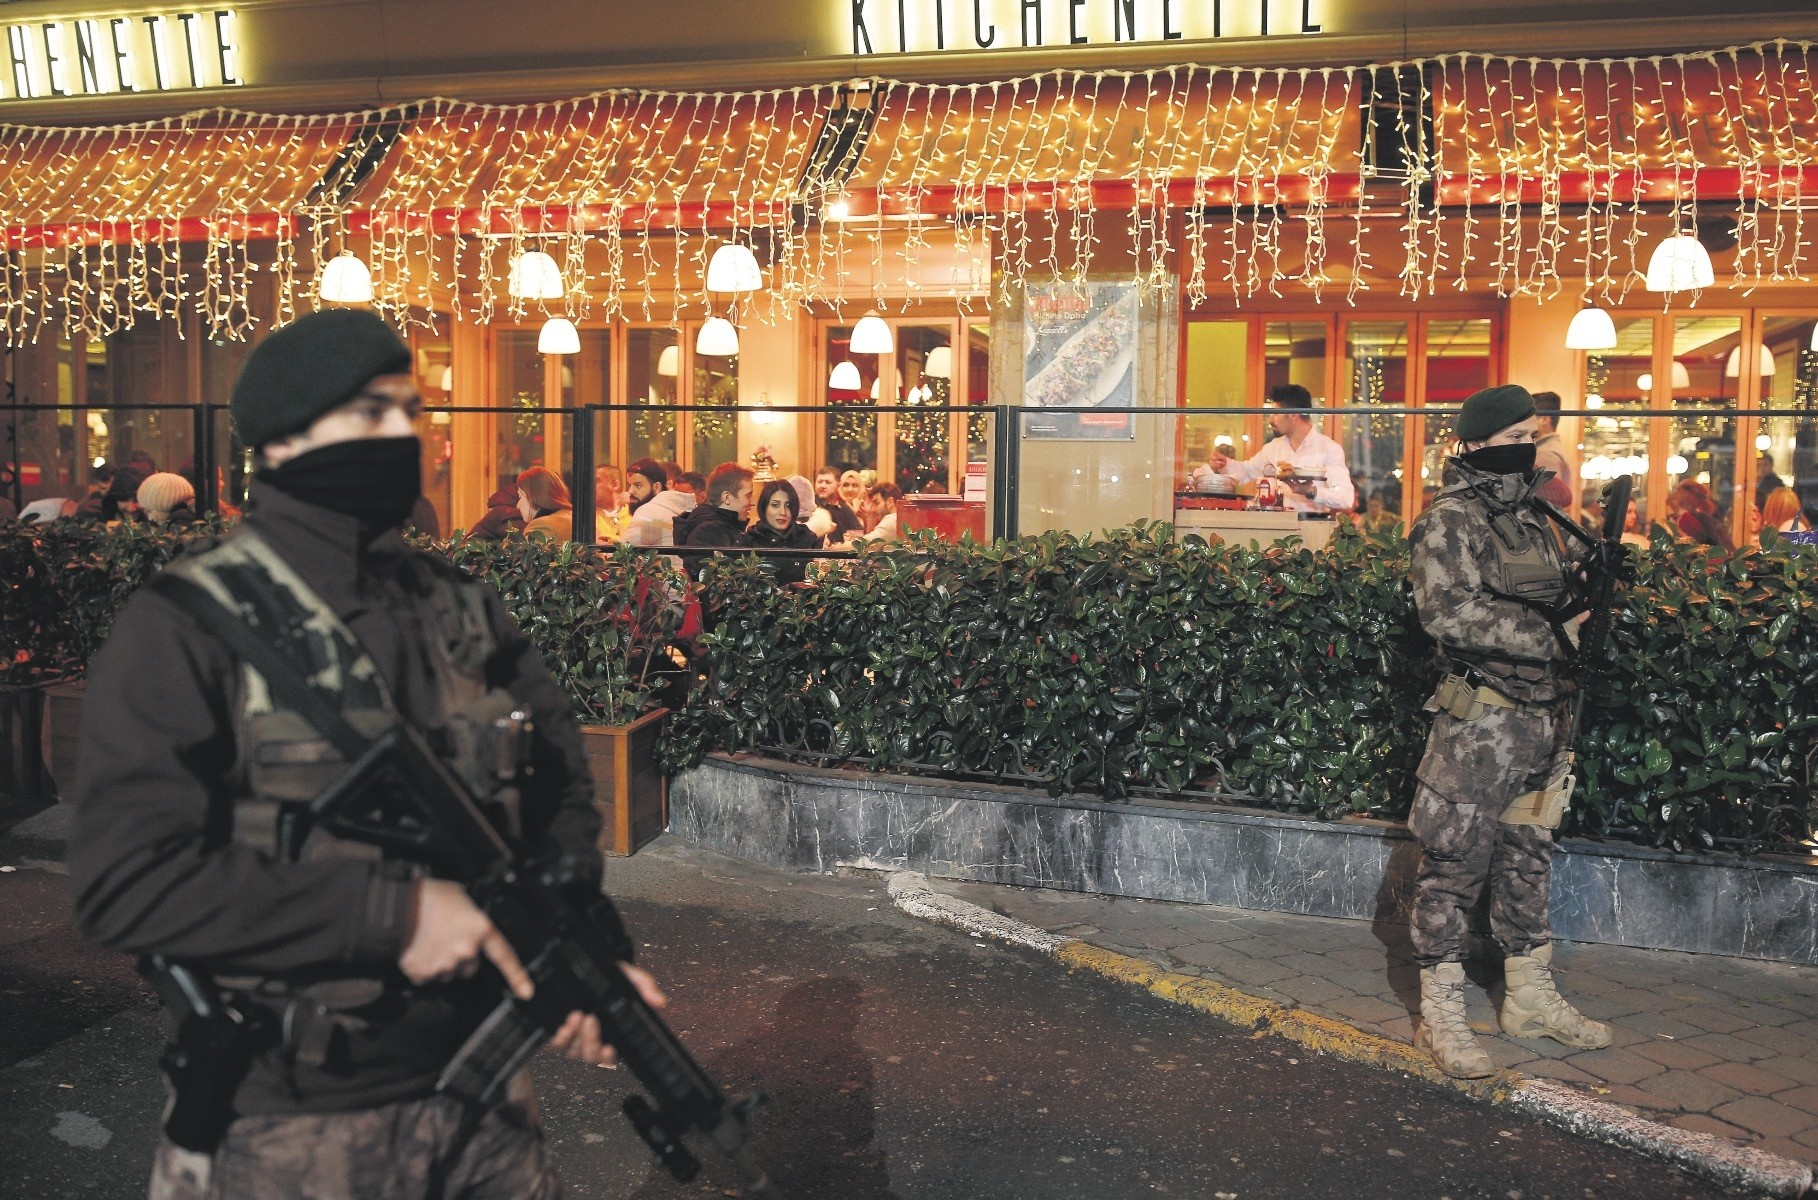 Special Operations police stand outside a restaurant at Istanbulu2019s Taksim Square during New Yearu2019s Eve. Security measures were stepped up across the city after a Daesh militant killed 39 people at a nightclub in the early hours of Jan. 1, 2017.